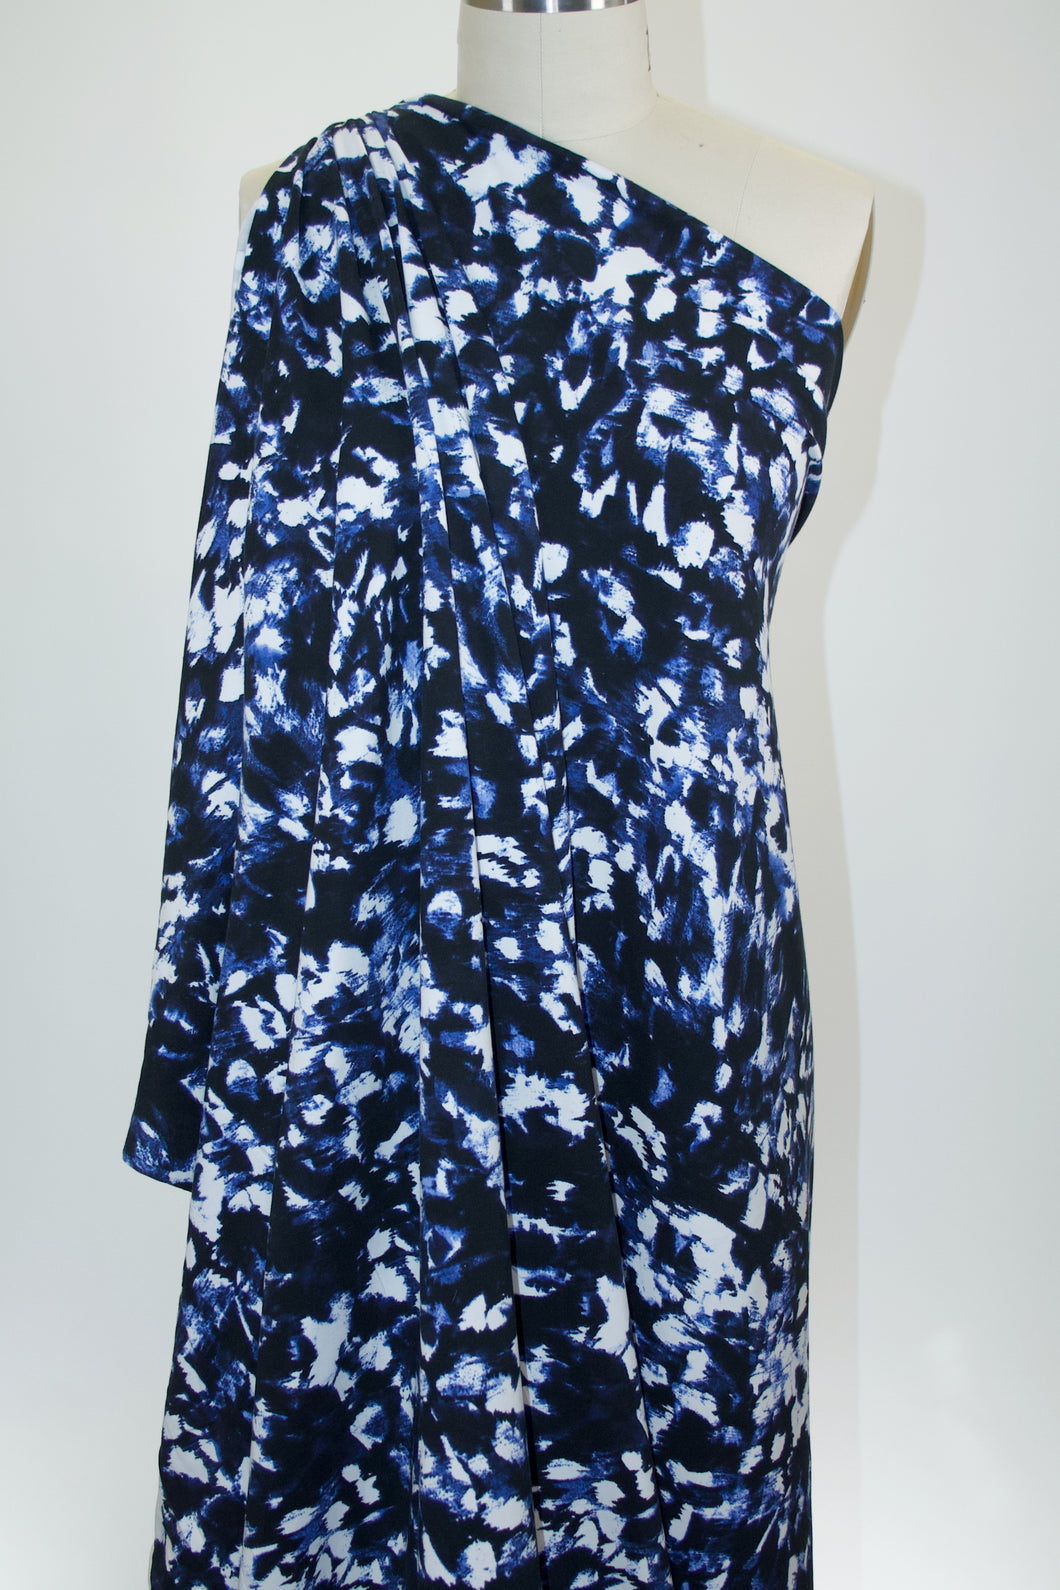 Abstract Print Cotton/Lycra Jersey - Blue/Black/White